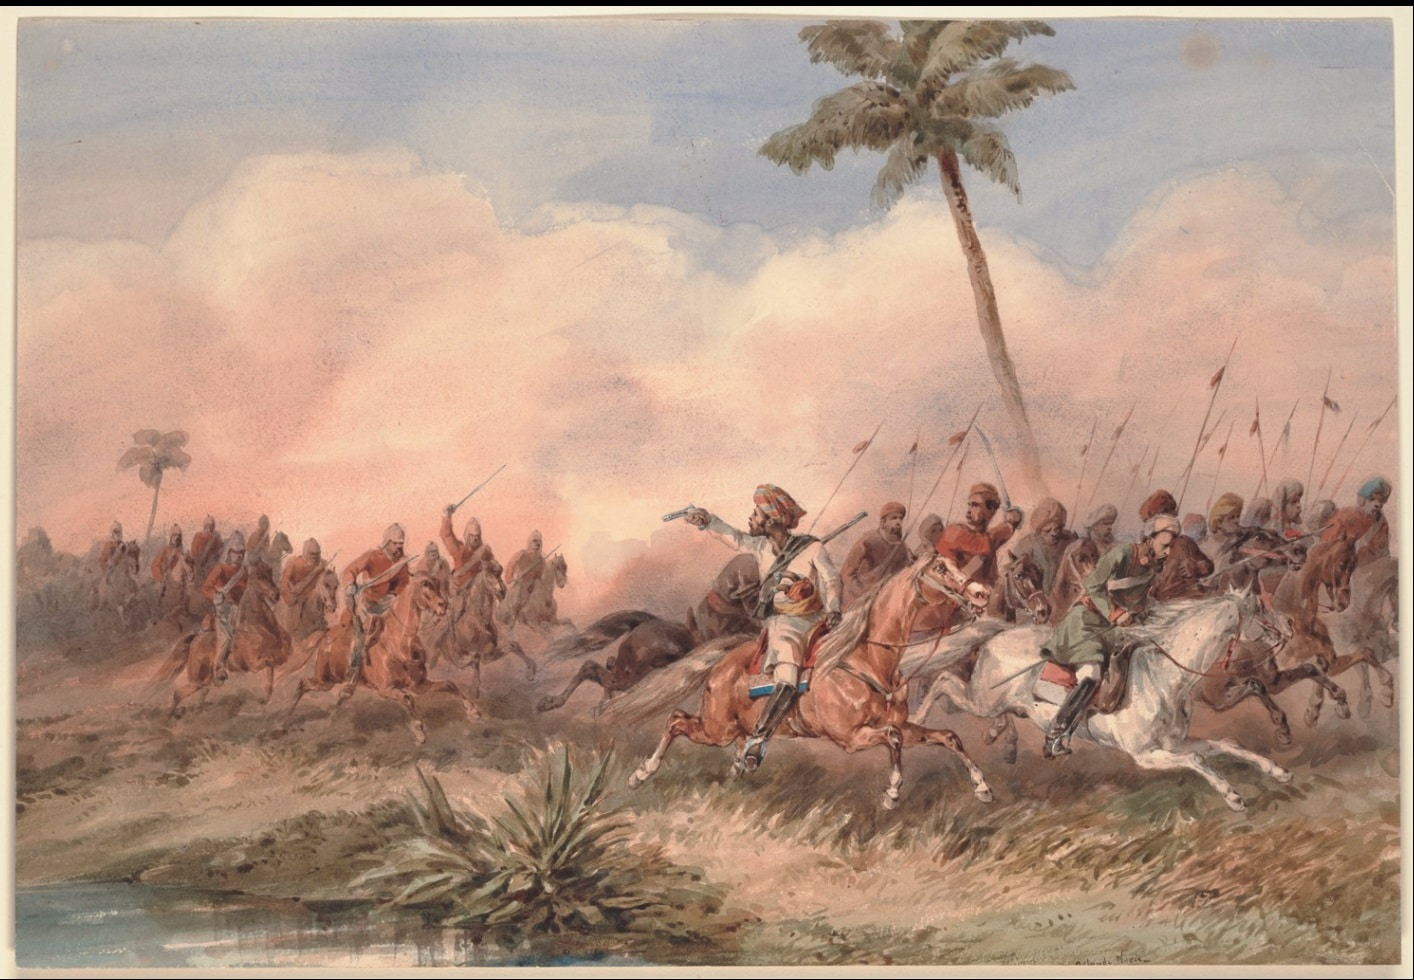 The 2nd Dragoon Guards, the Queen's Bays, routing the Lucknow mutineers near the Hyderabad road, Original watercolor signed by Norie; dragoons at left pursuing fleeing mutineers at right. Prints, Drawings, and Watercolors from the Anne S.K. Brown Military Collection. Sepoy Rebellion, 1857-1858, Oblong folio. Date 1 January 1859. Painting in watercolor by Orlando Norie (1832-1901). Public Domain.